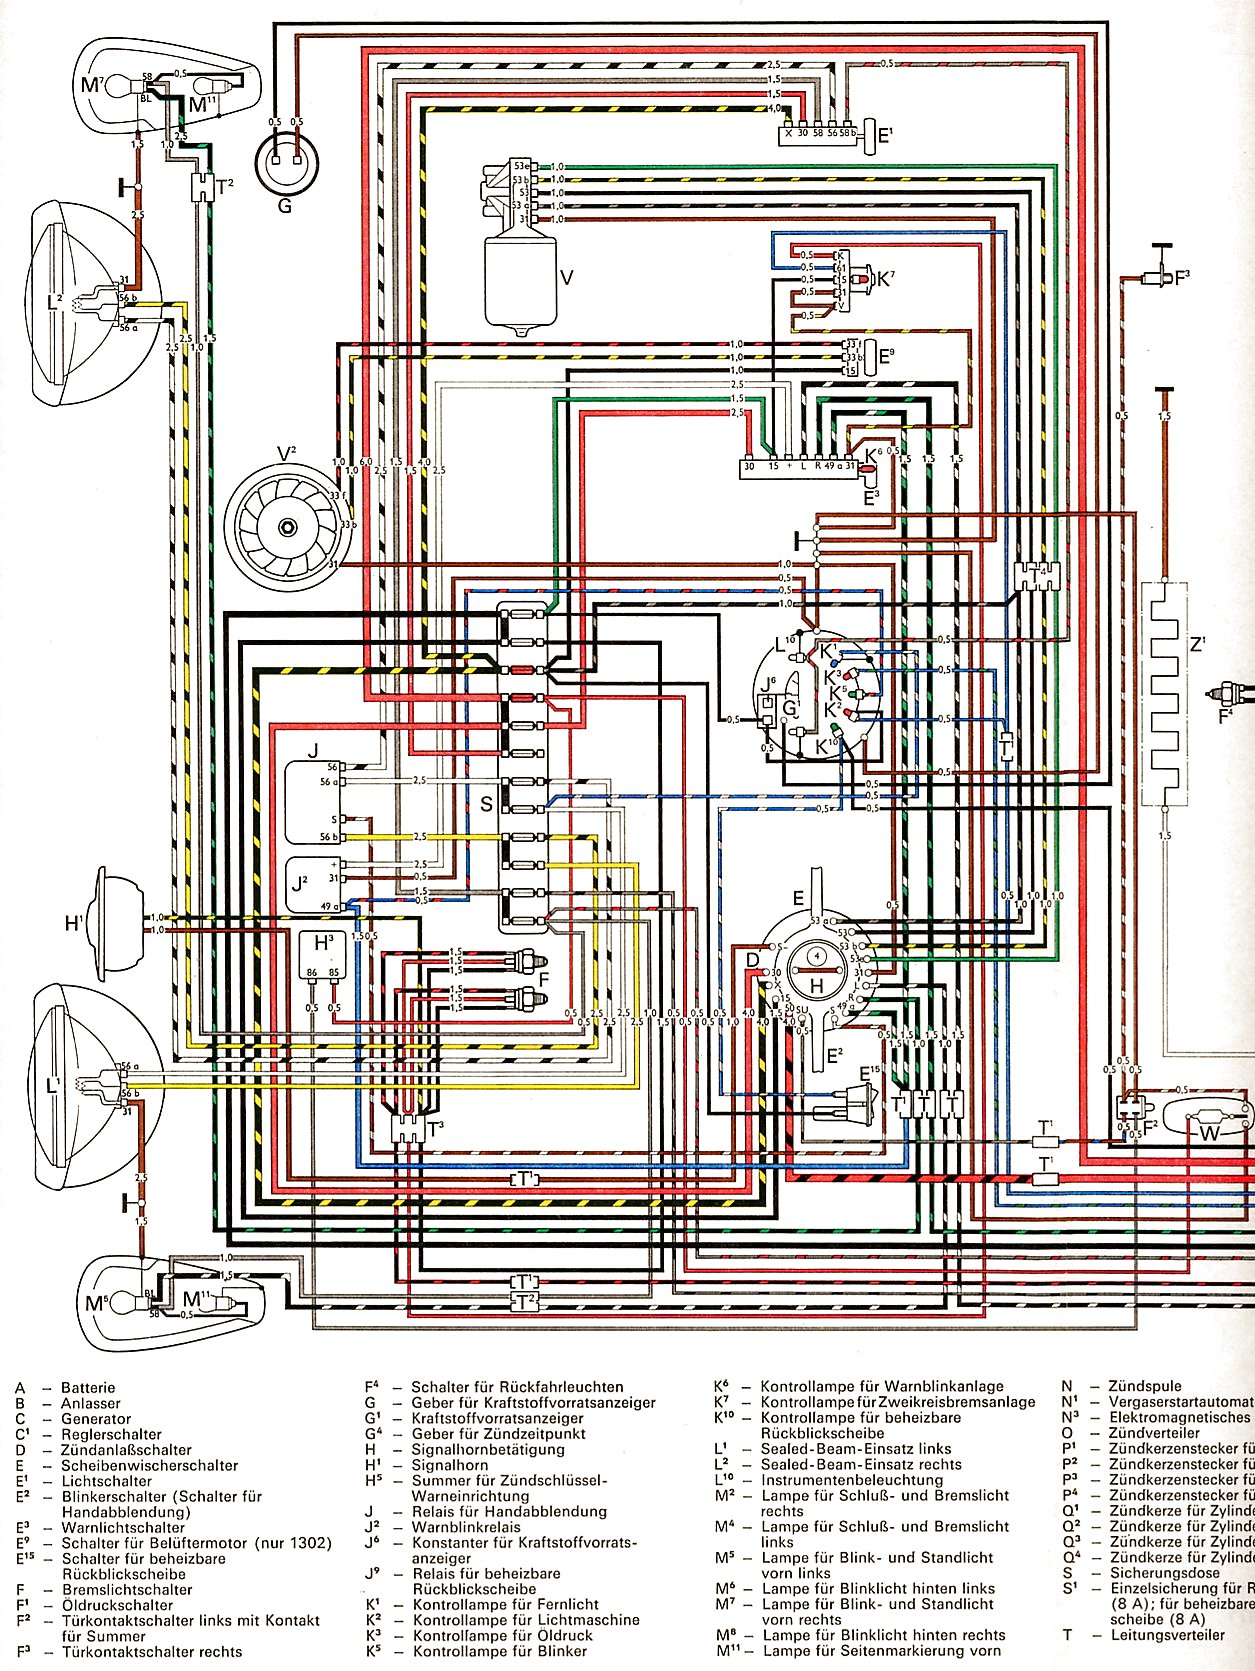 1300_and_1302_USA_from_August_1971 1 vw bug wiring 1969 vw starter wiring diagram \u2022 wiring diagrams j 1971 vw bus wiring diagram at mifinder.co